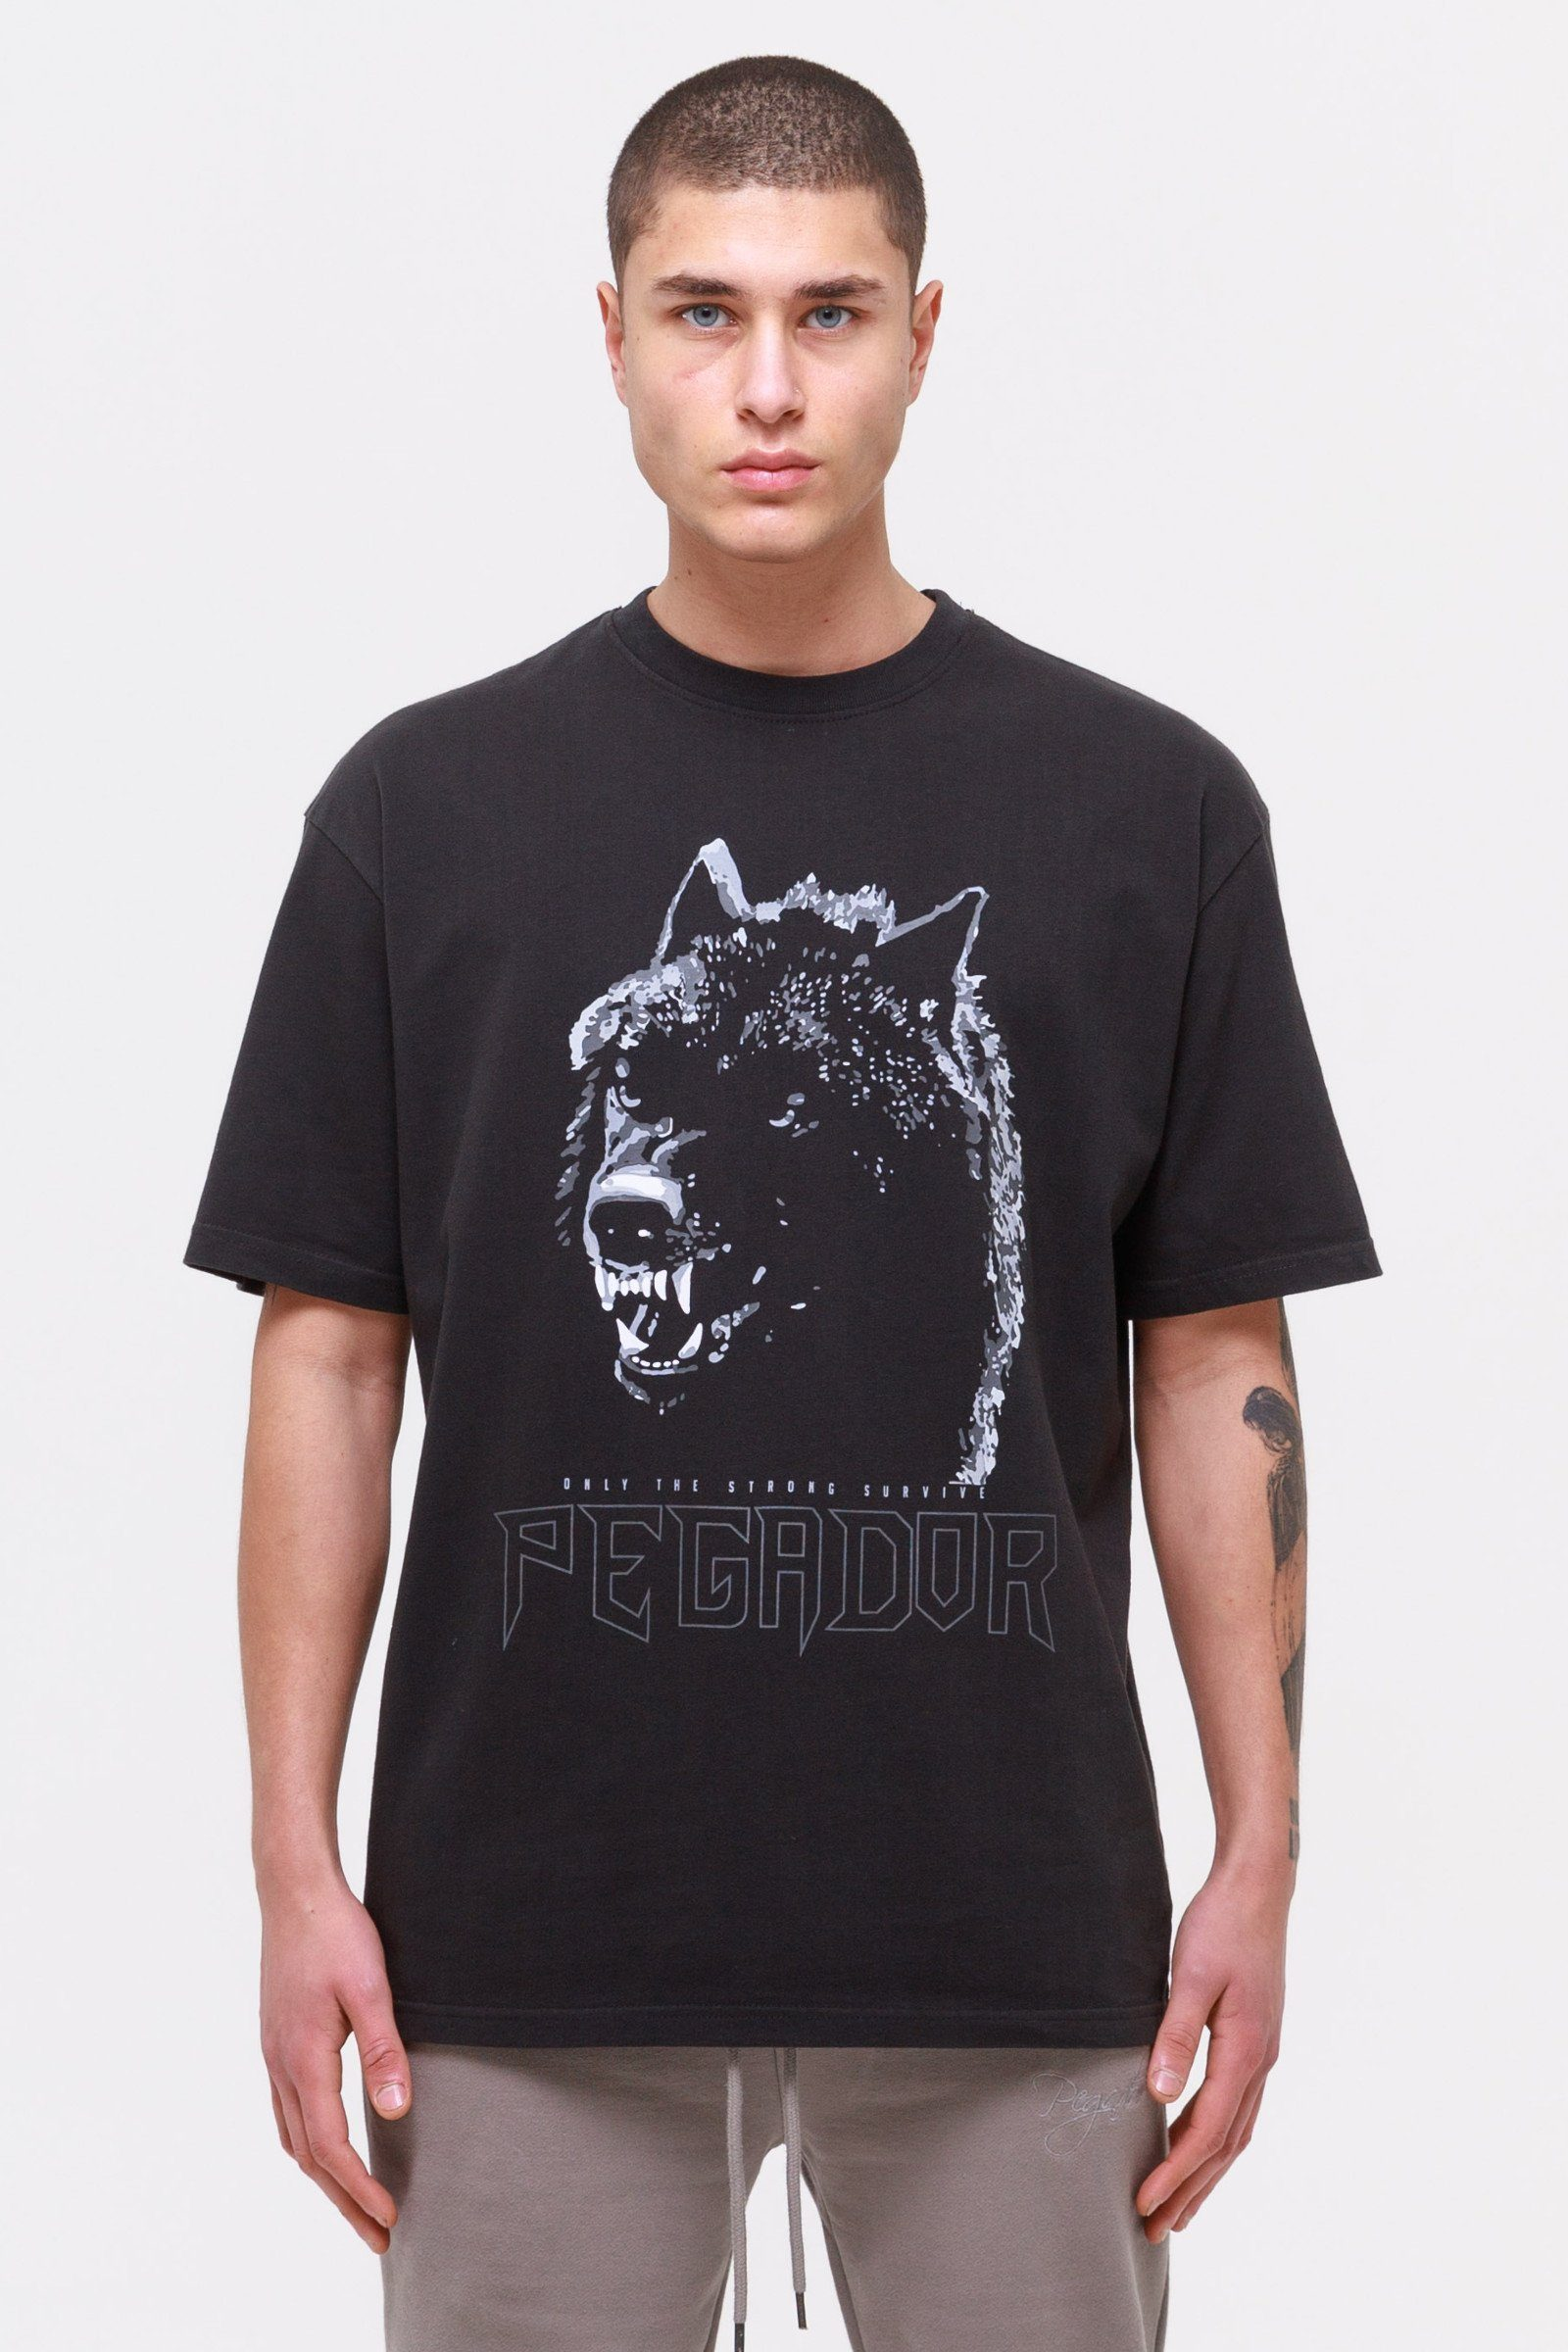 Oregon Oversized Tee Washed Black T-SHIRT Wild Society